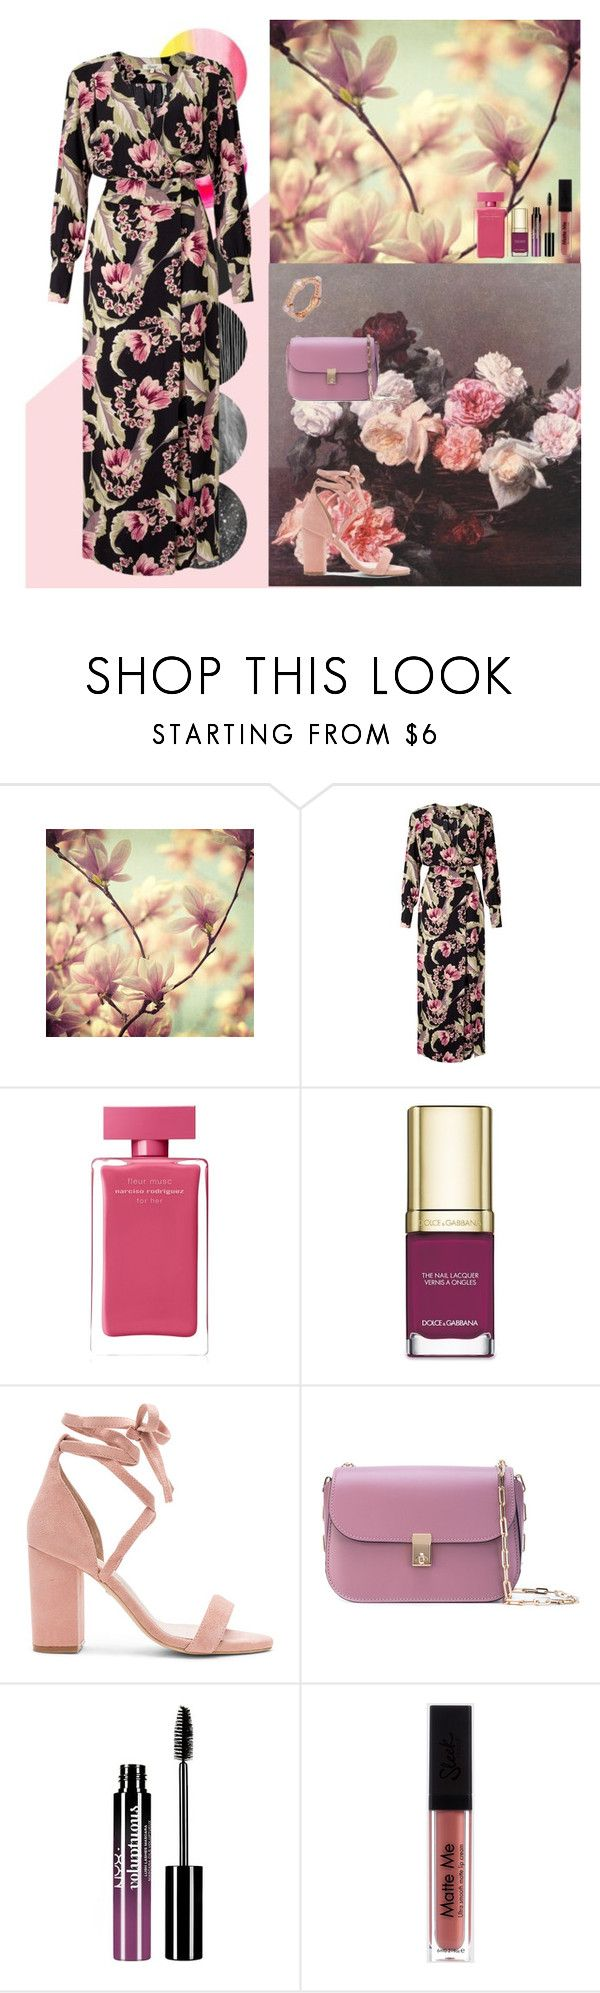 """""""The Campaign In An Art Gallery"""" by oksana-kolesnyk ❤ liked on Polyvore featuring Somerset by Alice Temperley, Narciso Rodriguez, Dolce&Gabbana, Raye, Valentino, Charlotte Russe and H.Azeem"""